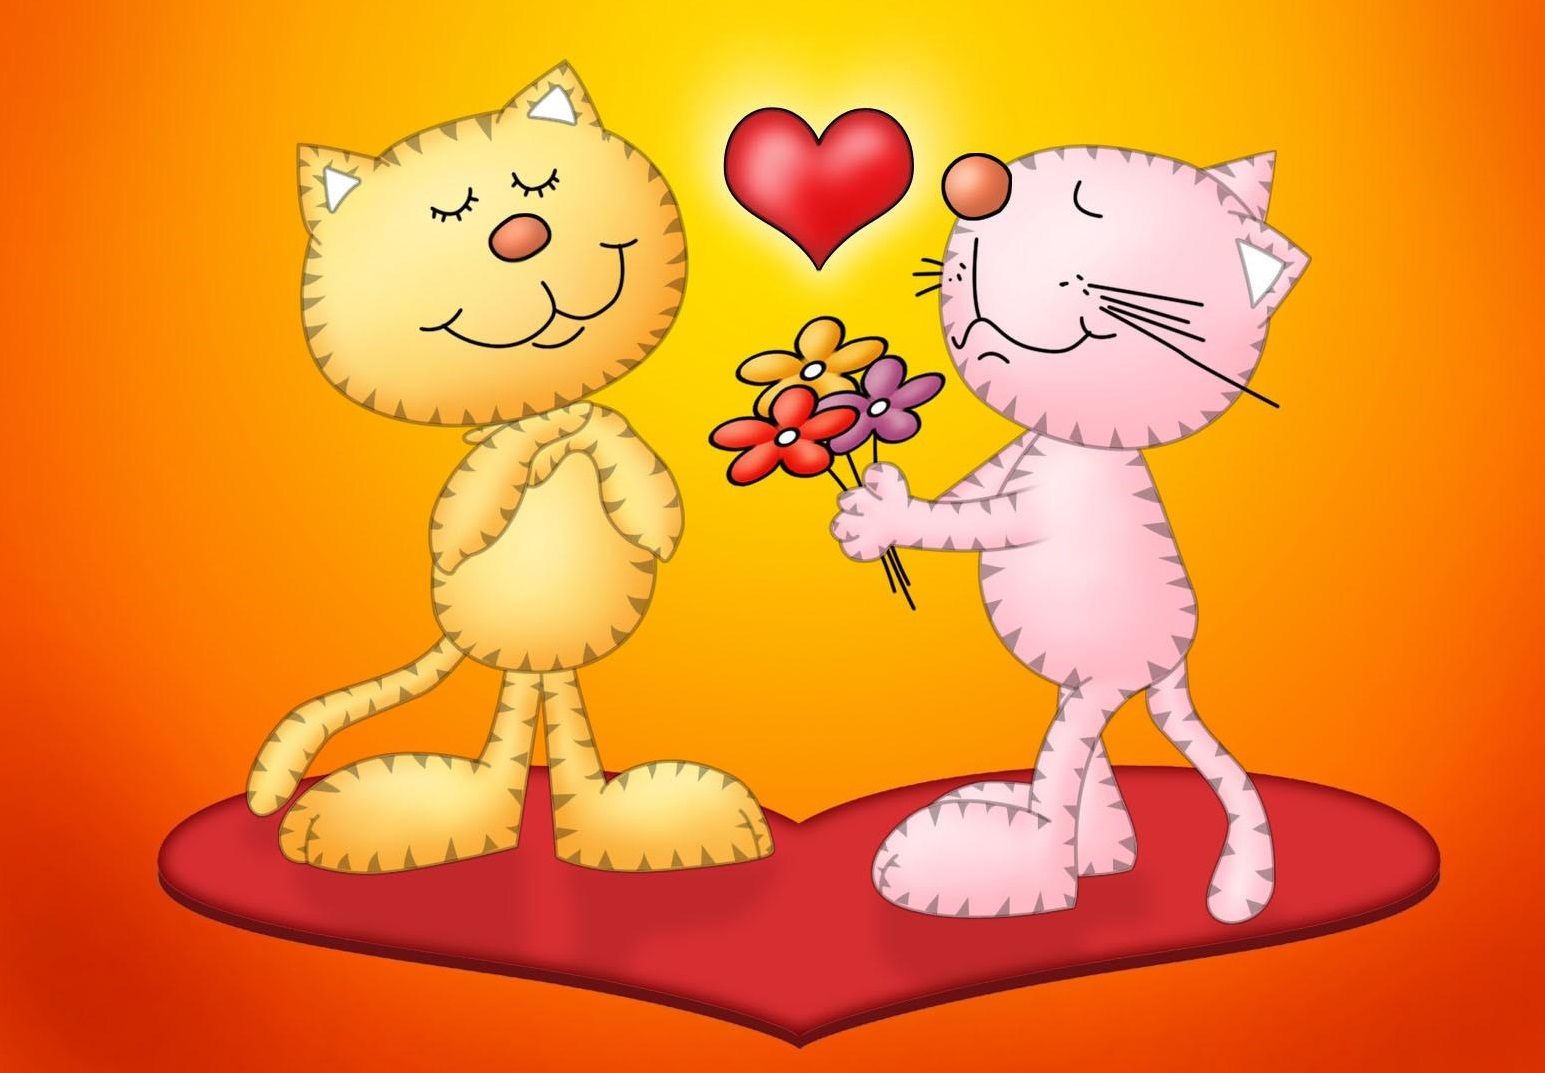 http://2.bp.blogspot.com/-3PHQ9b0dL_A/URI3XqP1OjI/AAAAAAAAA0A/AaL8U6A2r1w/s1600/Happy+Propose+day+2013+HD+wallpapers.jpg